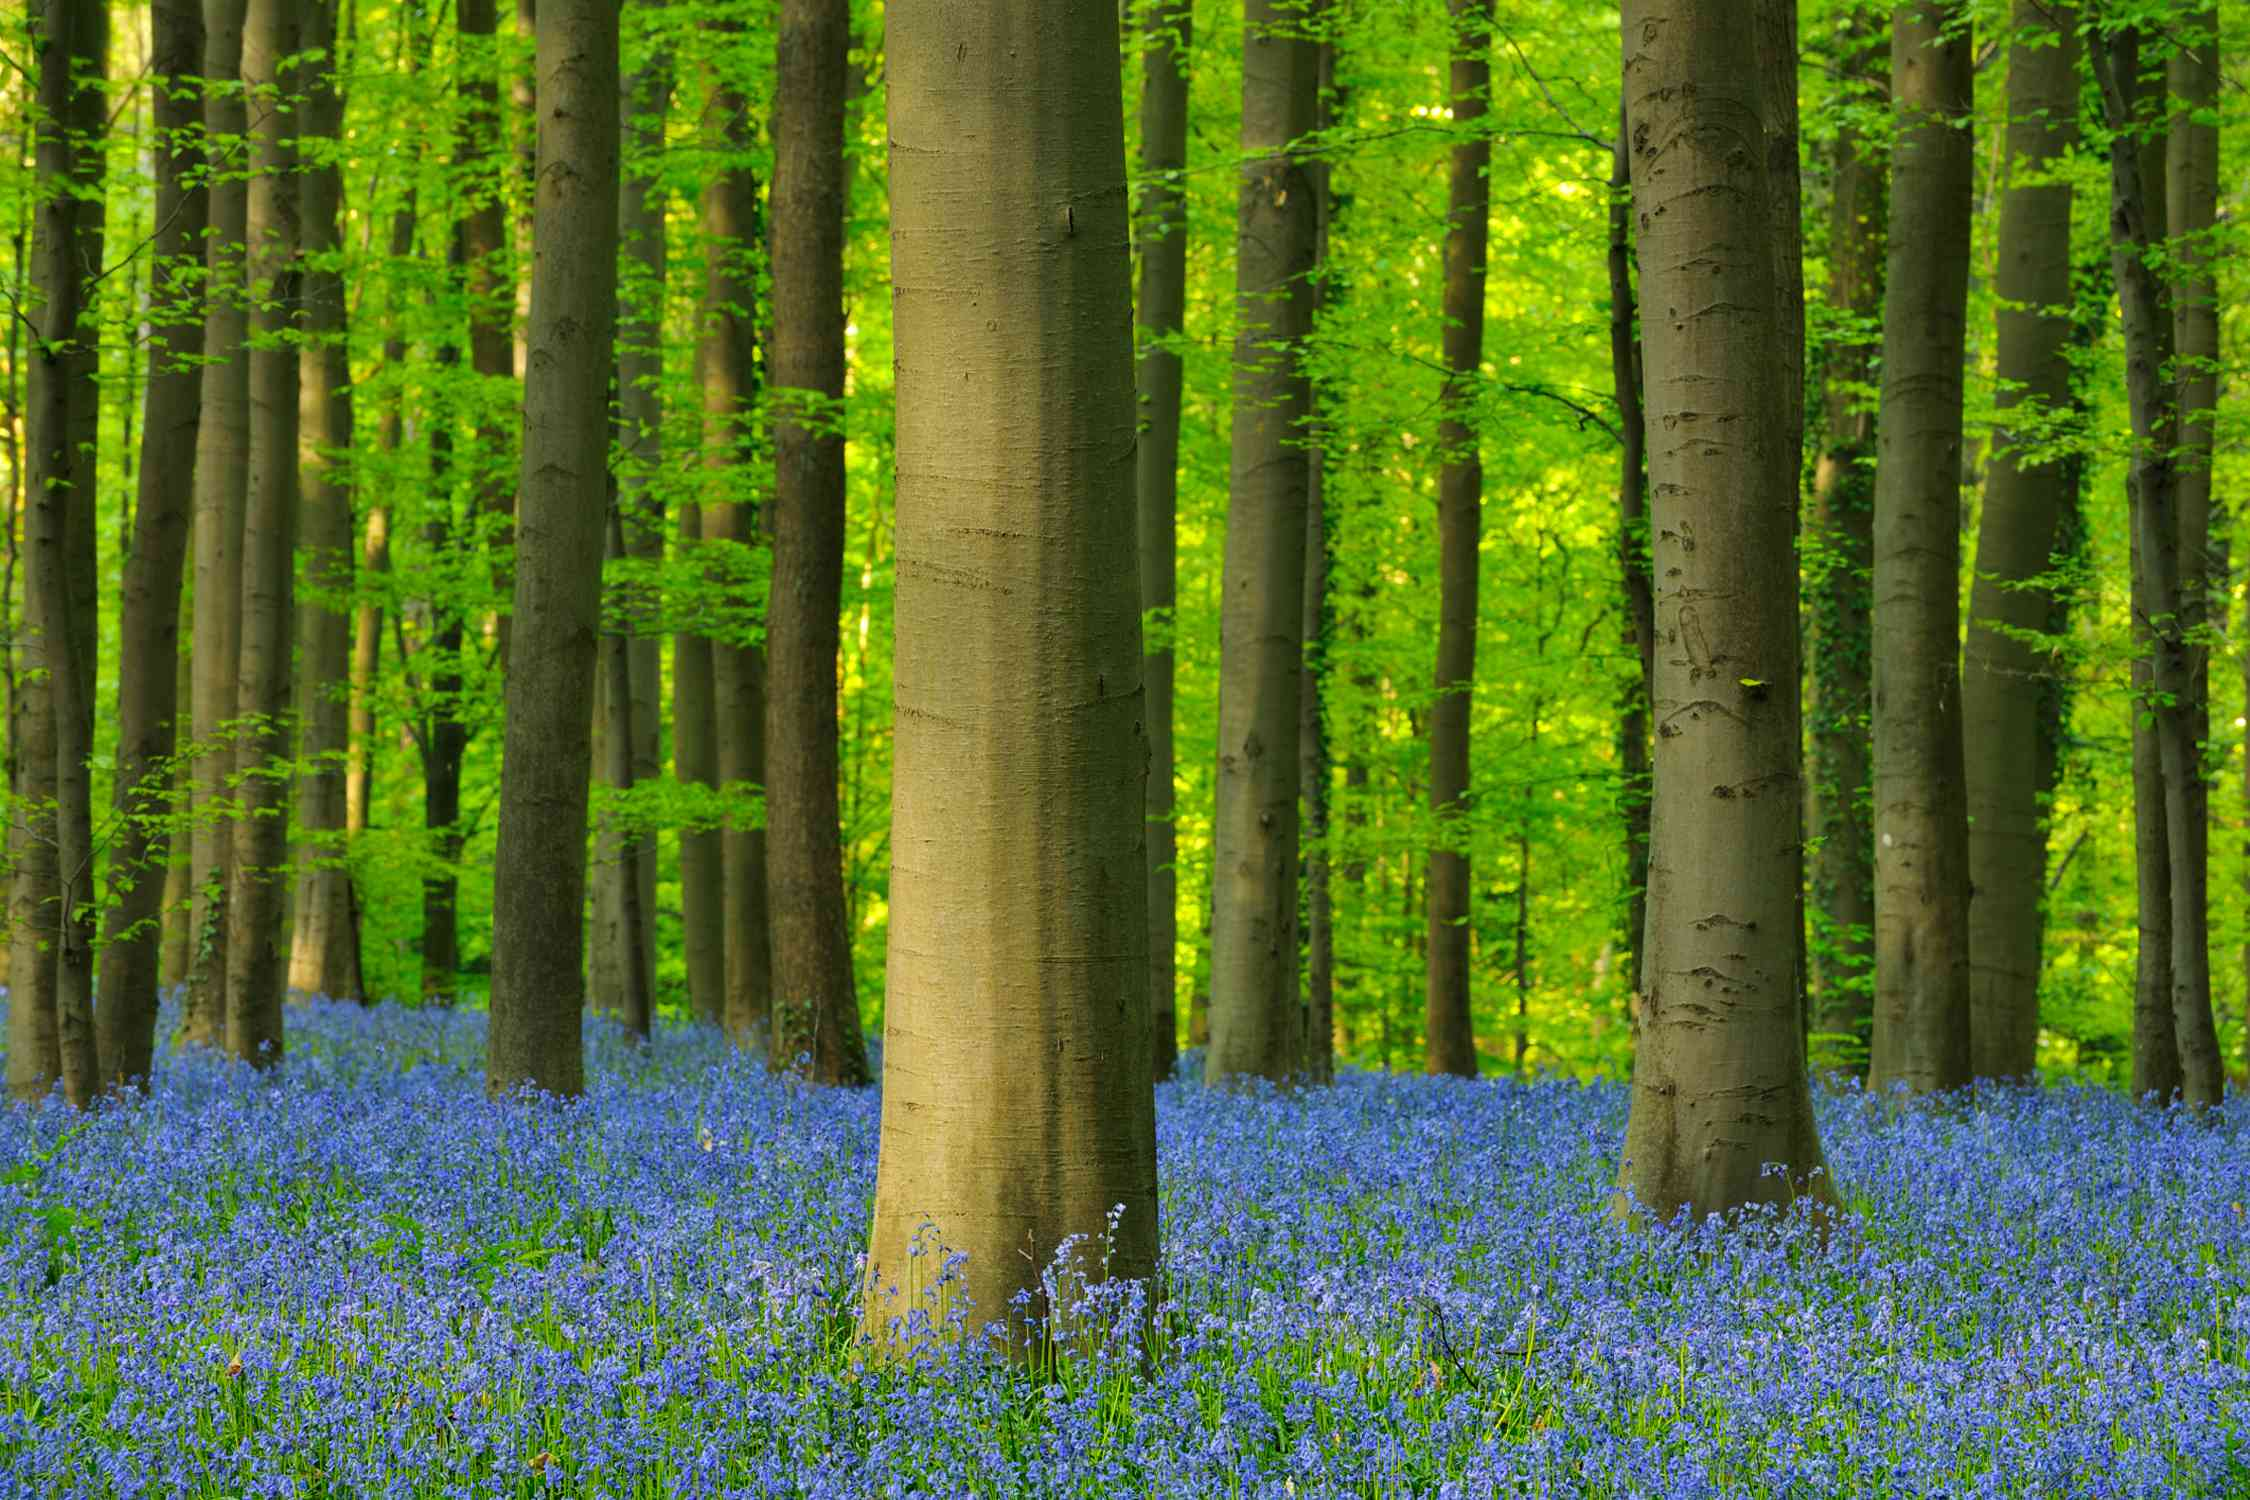 The forest biome includes temperate forests, tropical forests, and boreal forests. The beech forest pictured here is located in Belgium.